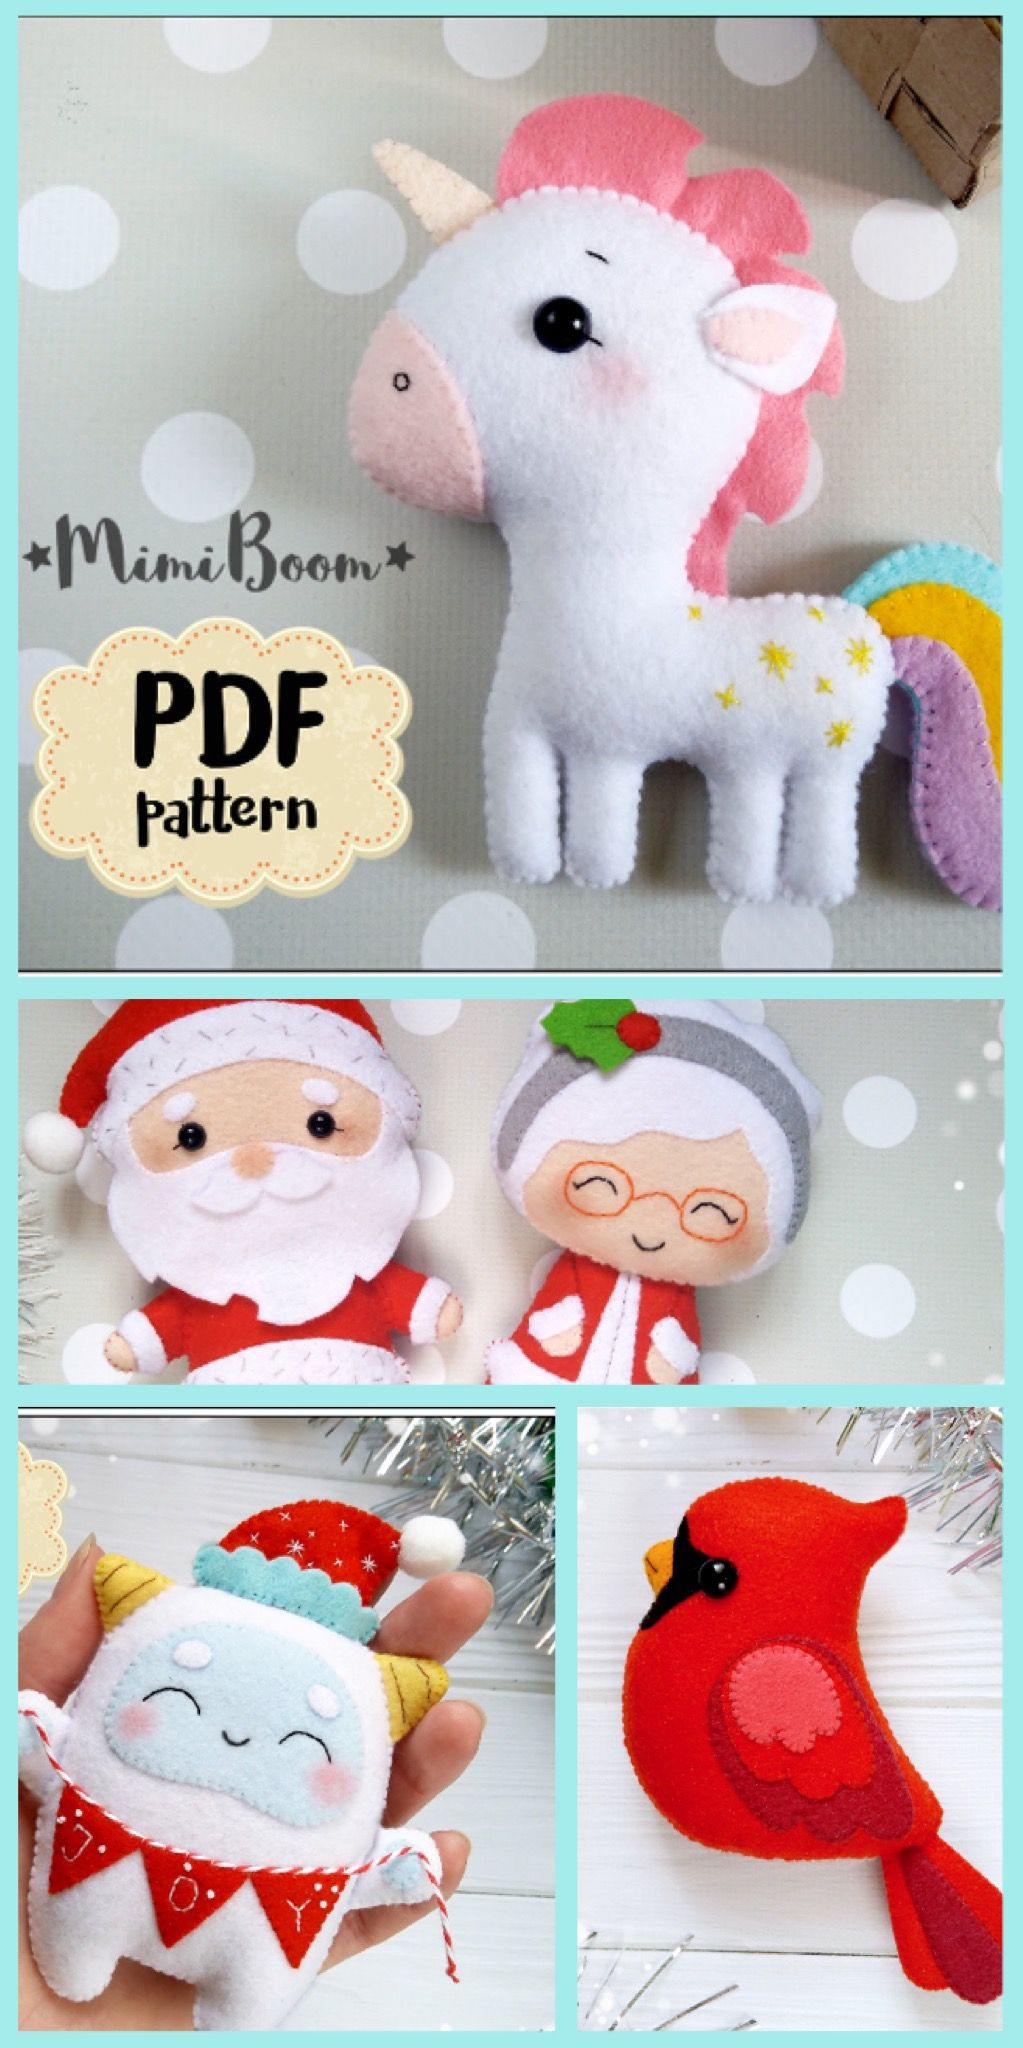 Cute Little Felt Ornaments To Make Download The Pattern Instantly And Craft Away Pdf Ornament Felt Ornaments Diy Kids Kids Ornaments Felt Crafts Christmas